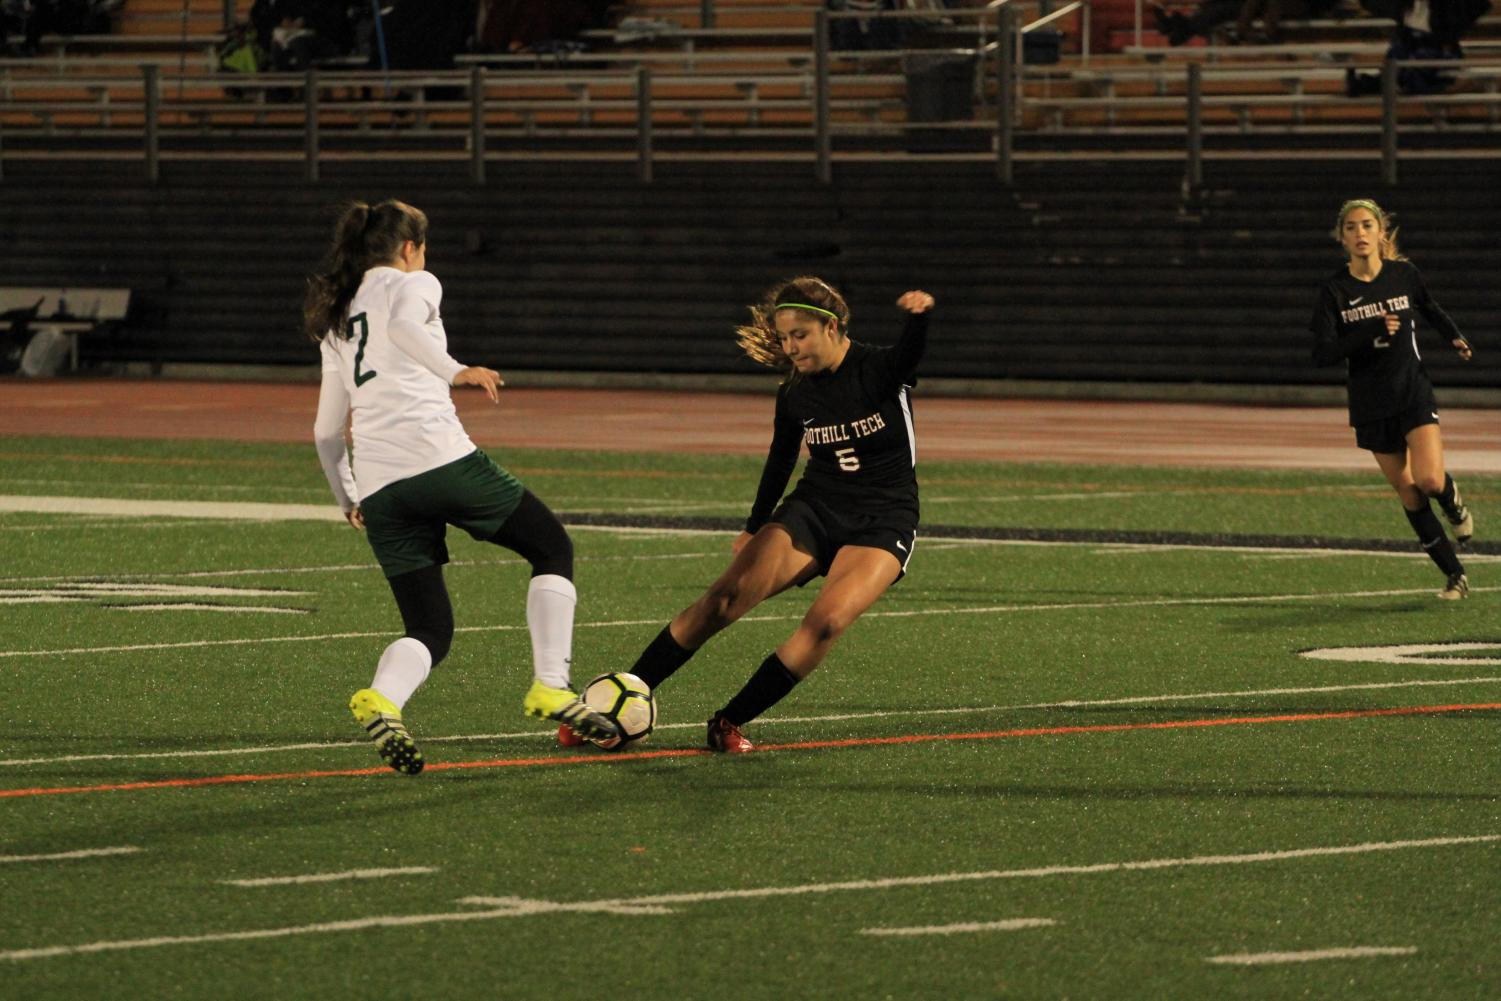 Kiera+Rivera+%E2%80%9921+strikes+the+ball+hard+in+the+nick+of+time.+Credit%3A+Ethan+Crouch+%2F+The+Foothill+Dragon+Press